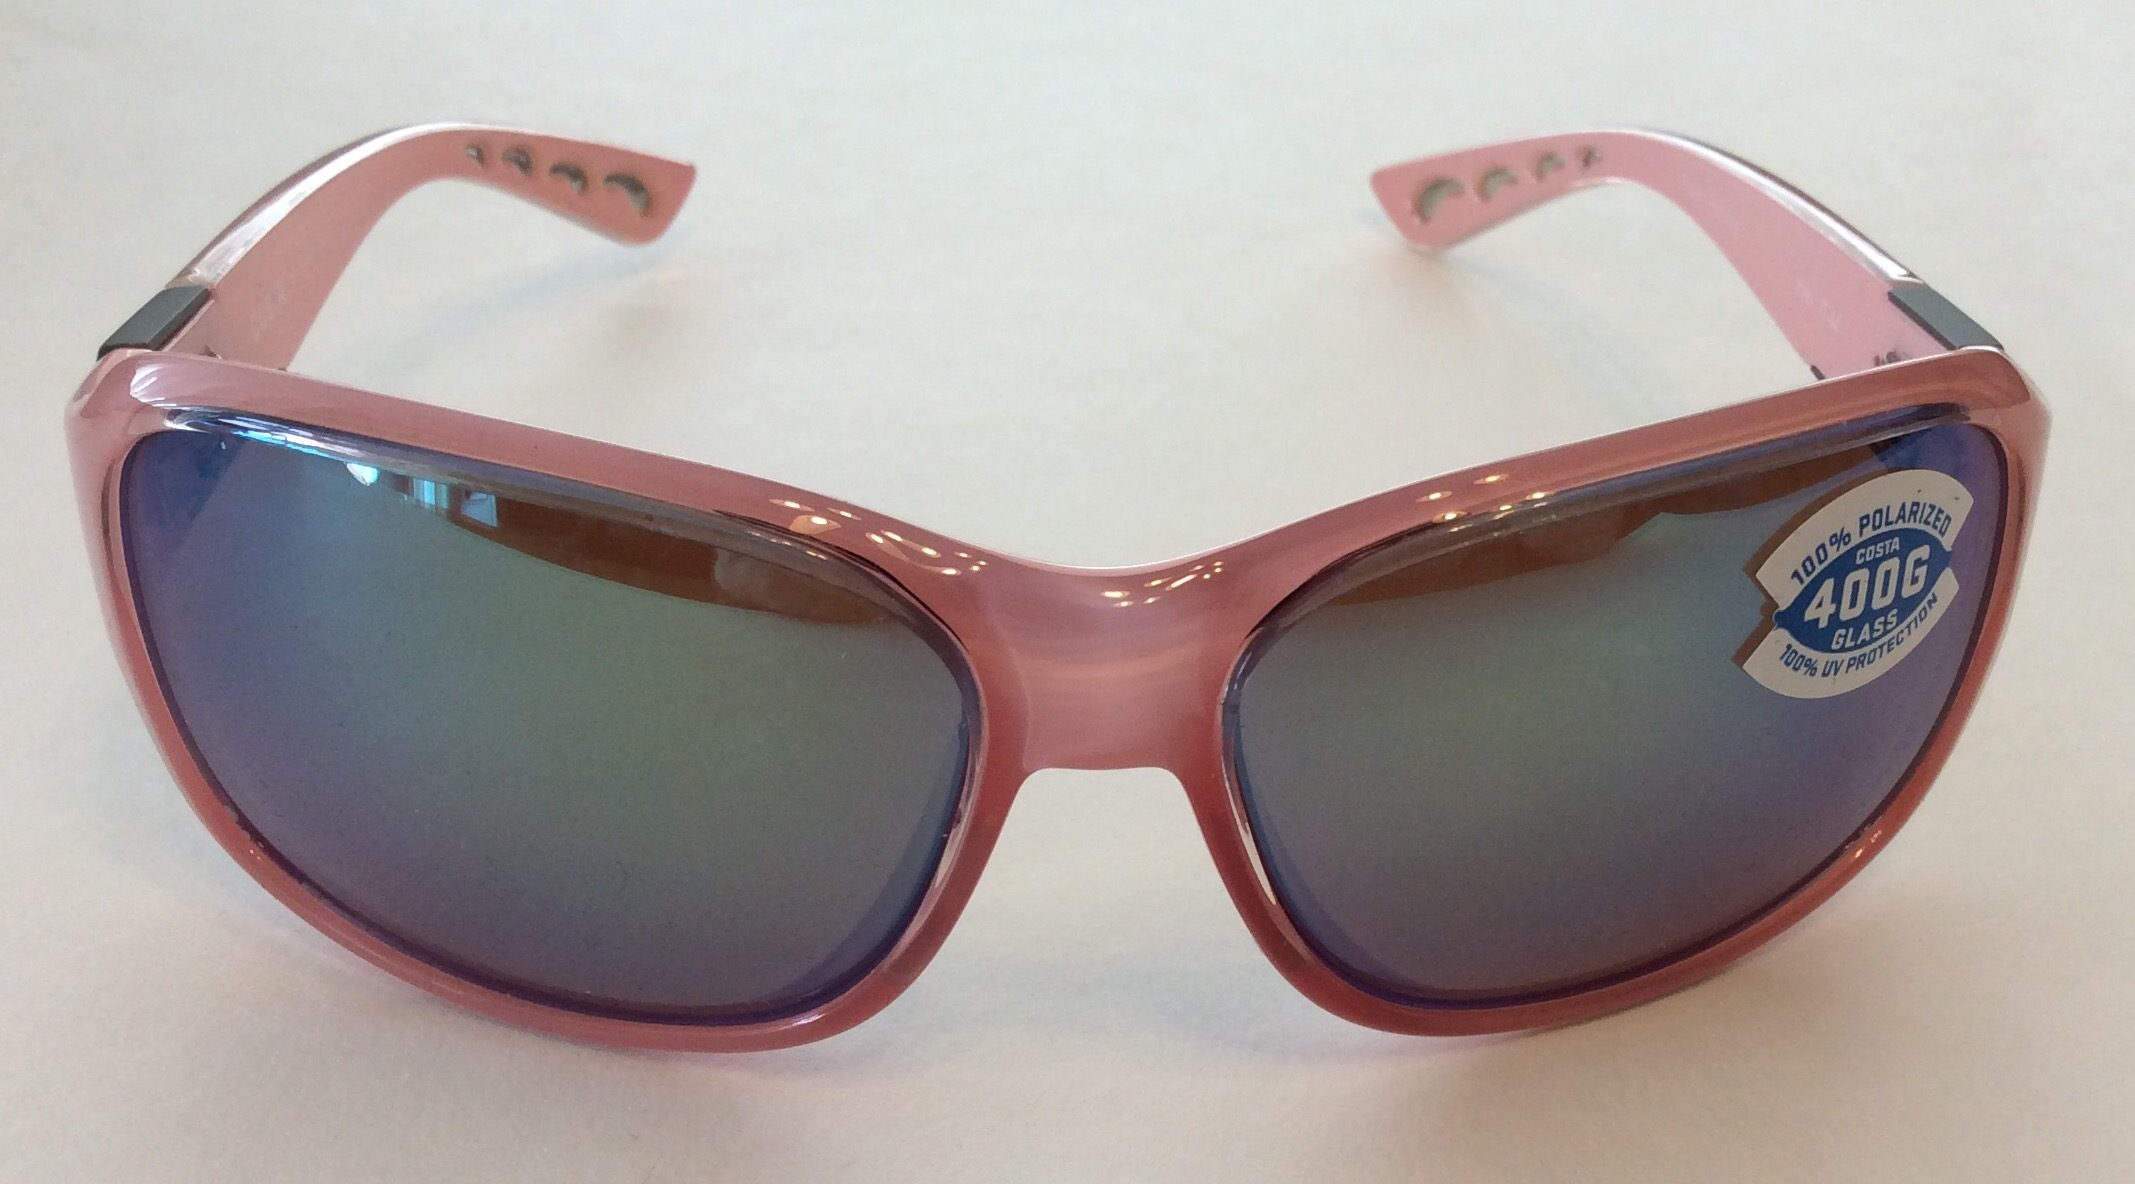 2a66dfaa6b25 Costa Del Mar Inlet Sunglasses - Coral Pink - Green Mirror POLARIZED 400G  Glass